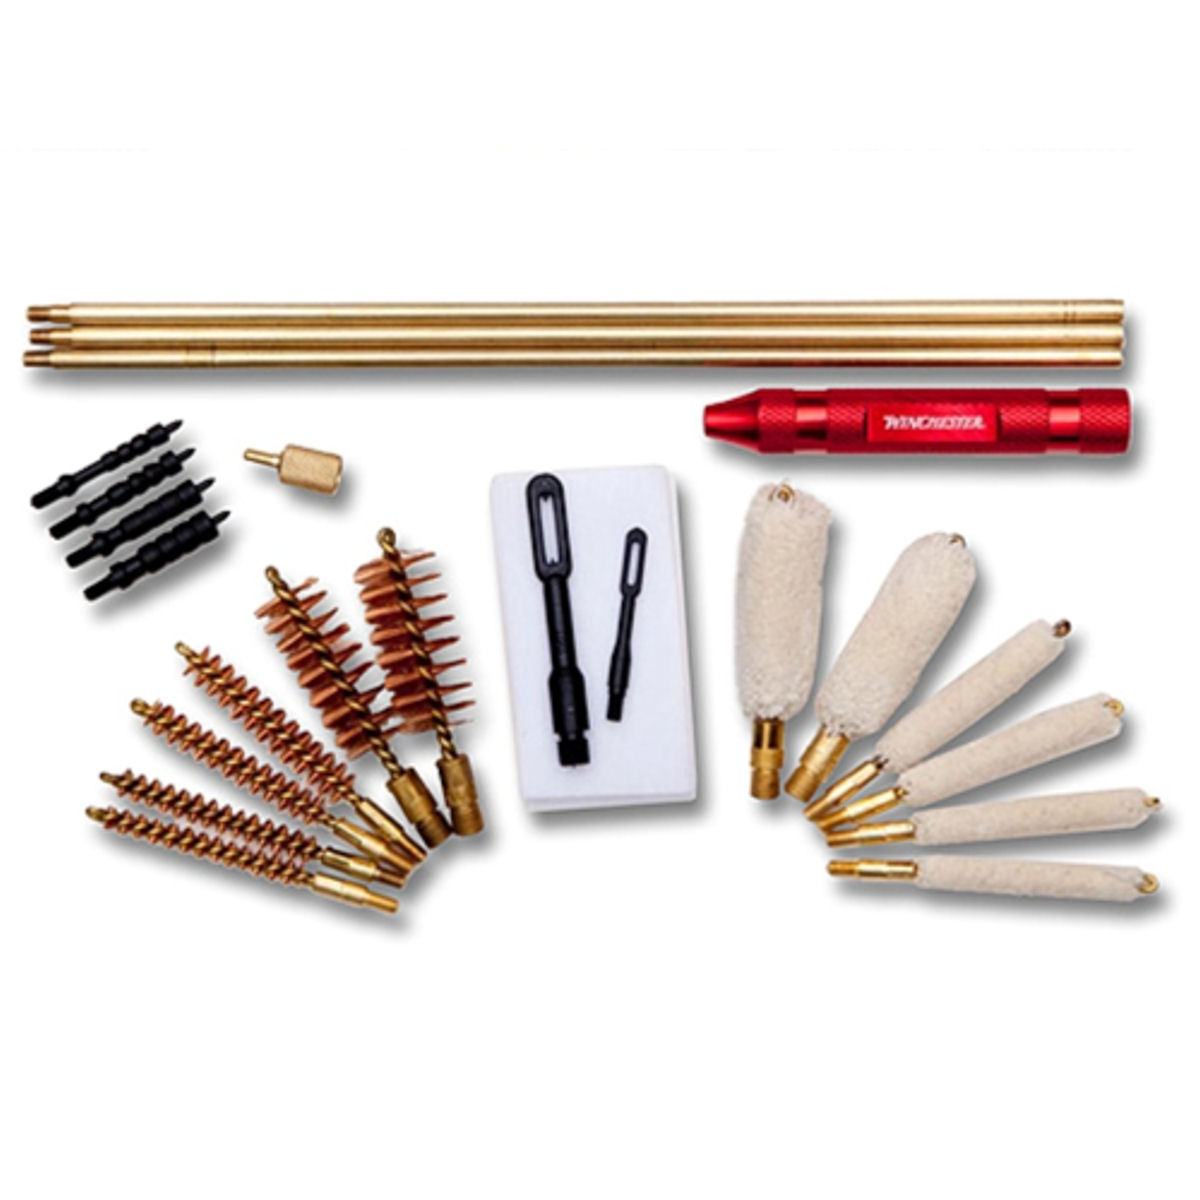 WINCHESTER 24 PIECE UNIVERSAL CLEANING KIT